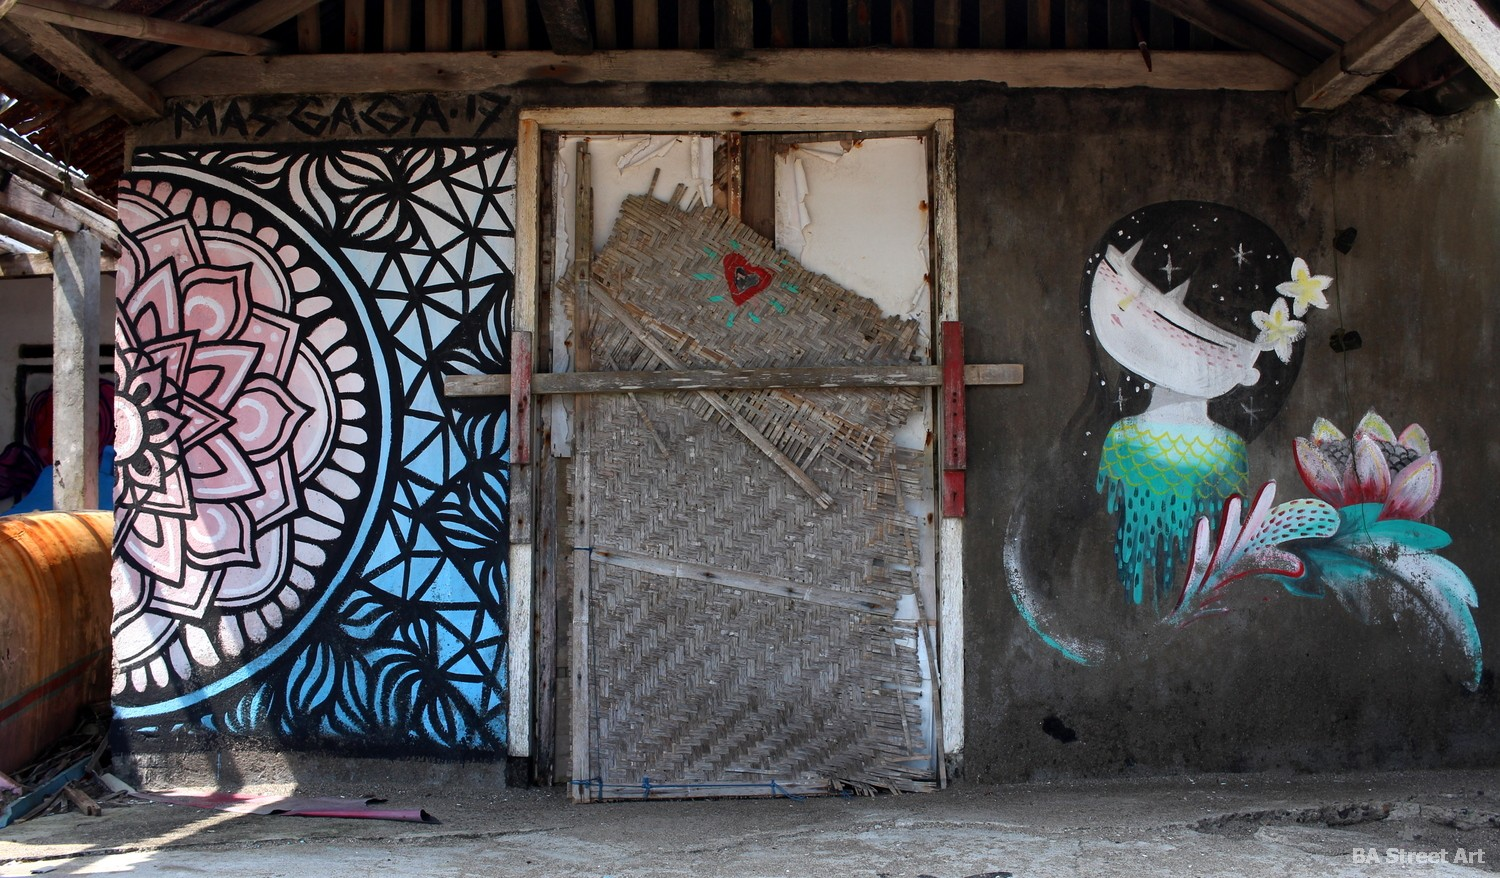 netalayan fishing village beach shack mural urban art mas gaga girl street art buenosairesstreetart.com